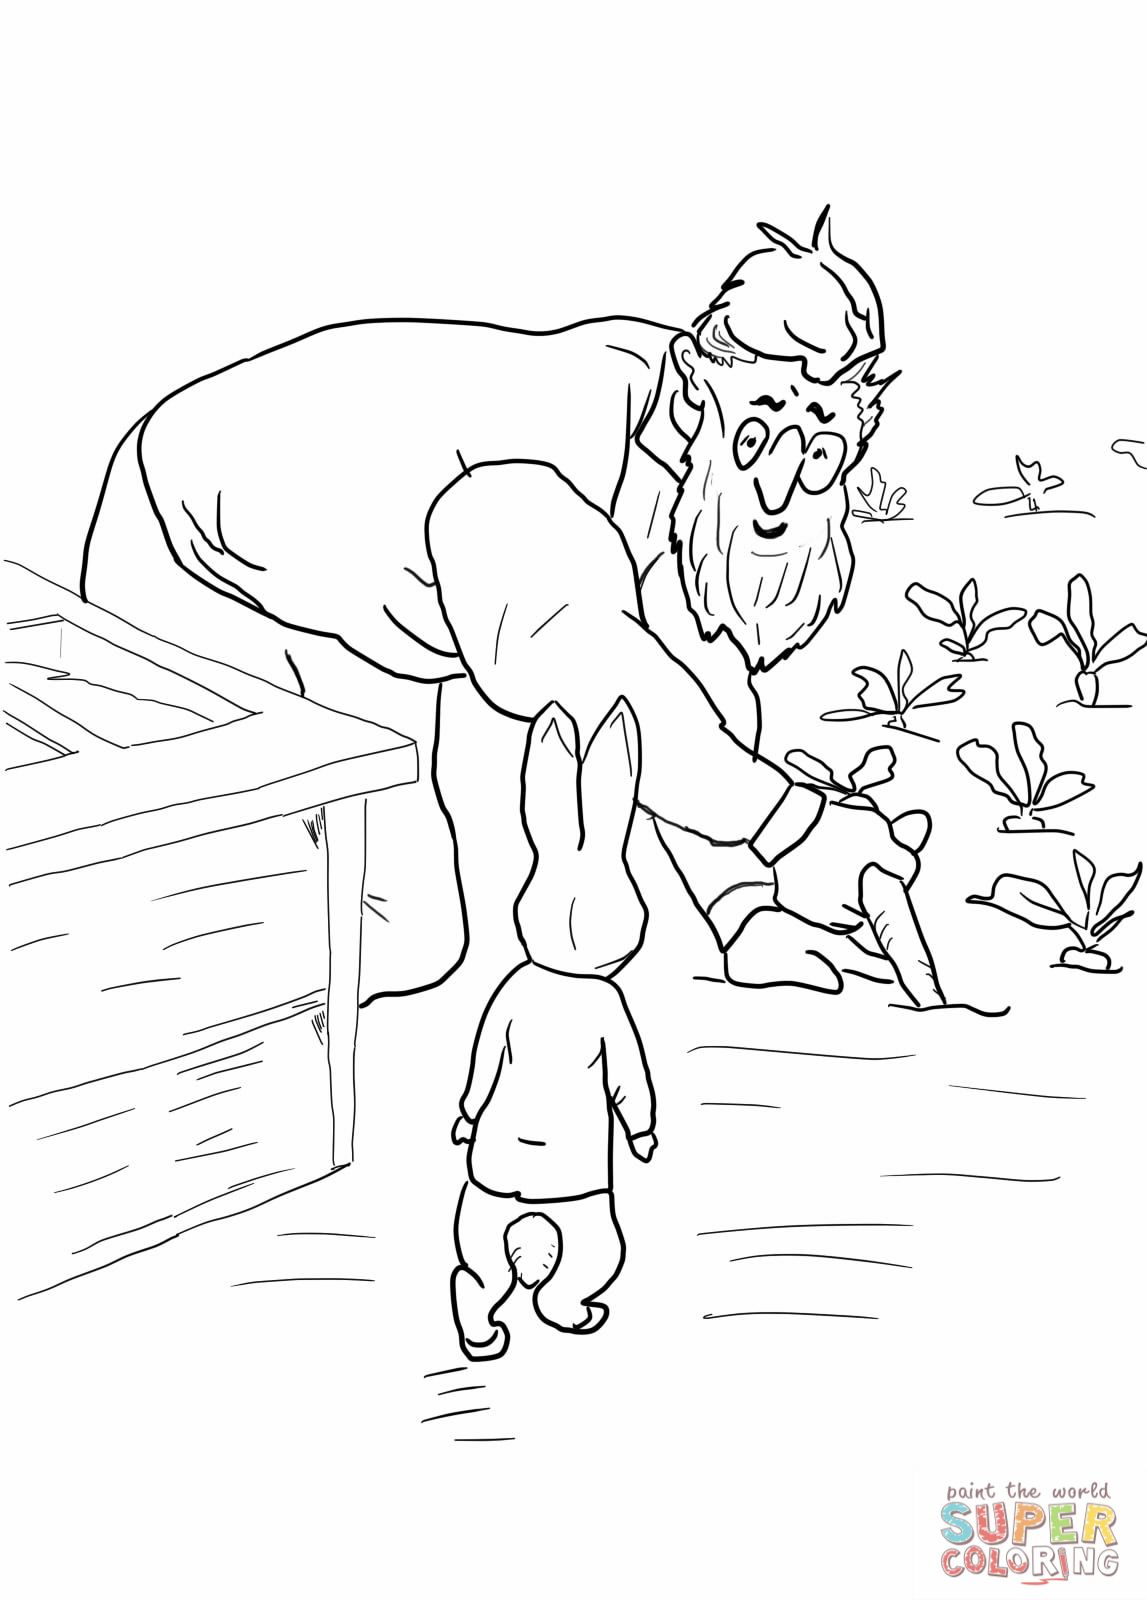 Peter Rabbit is Spotted by mr Mcgregor Coloring Online